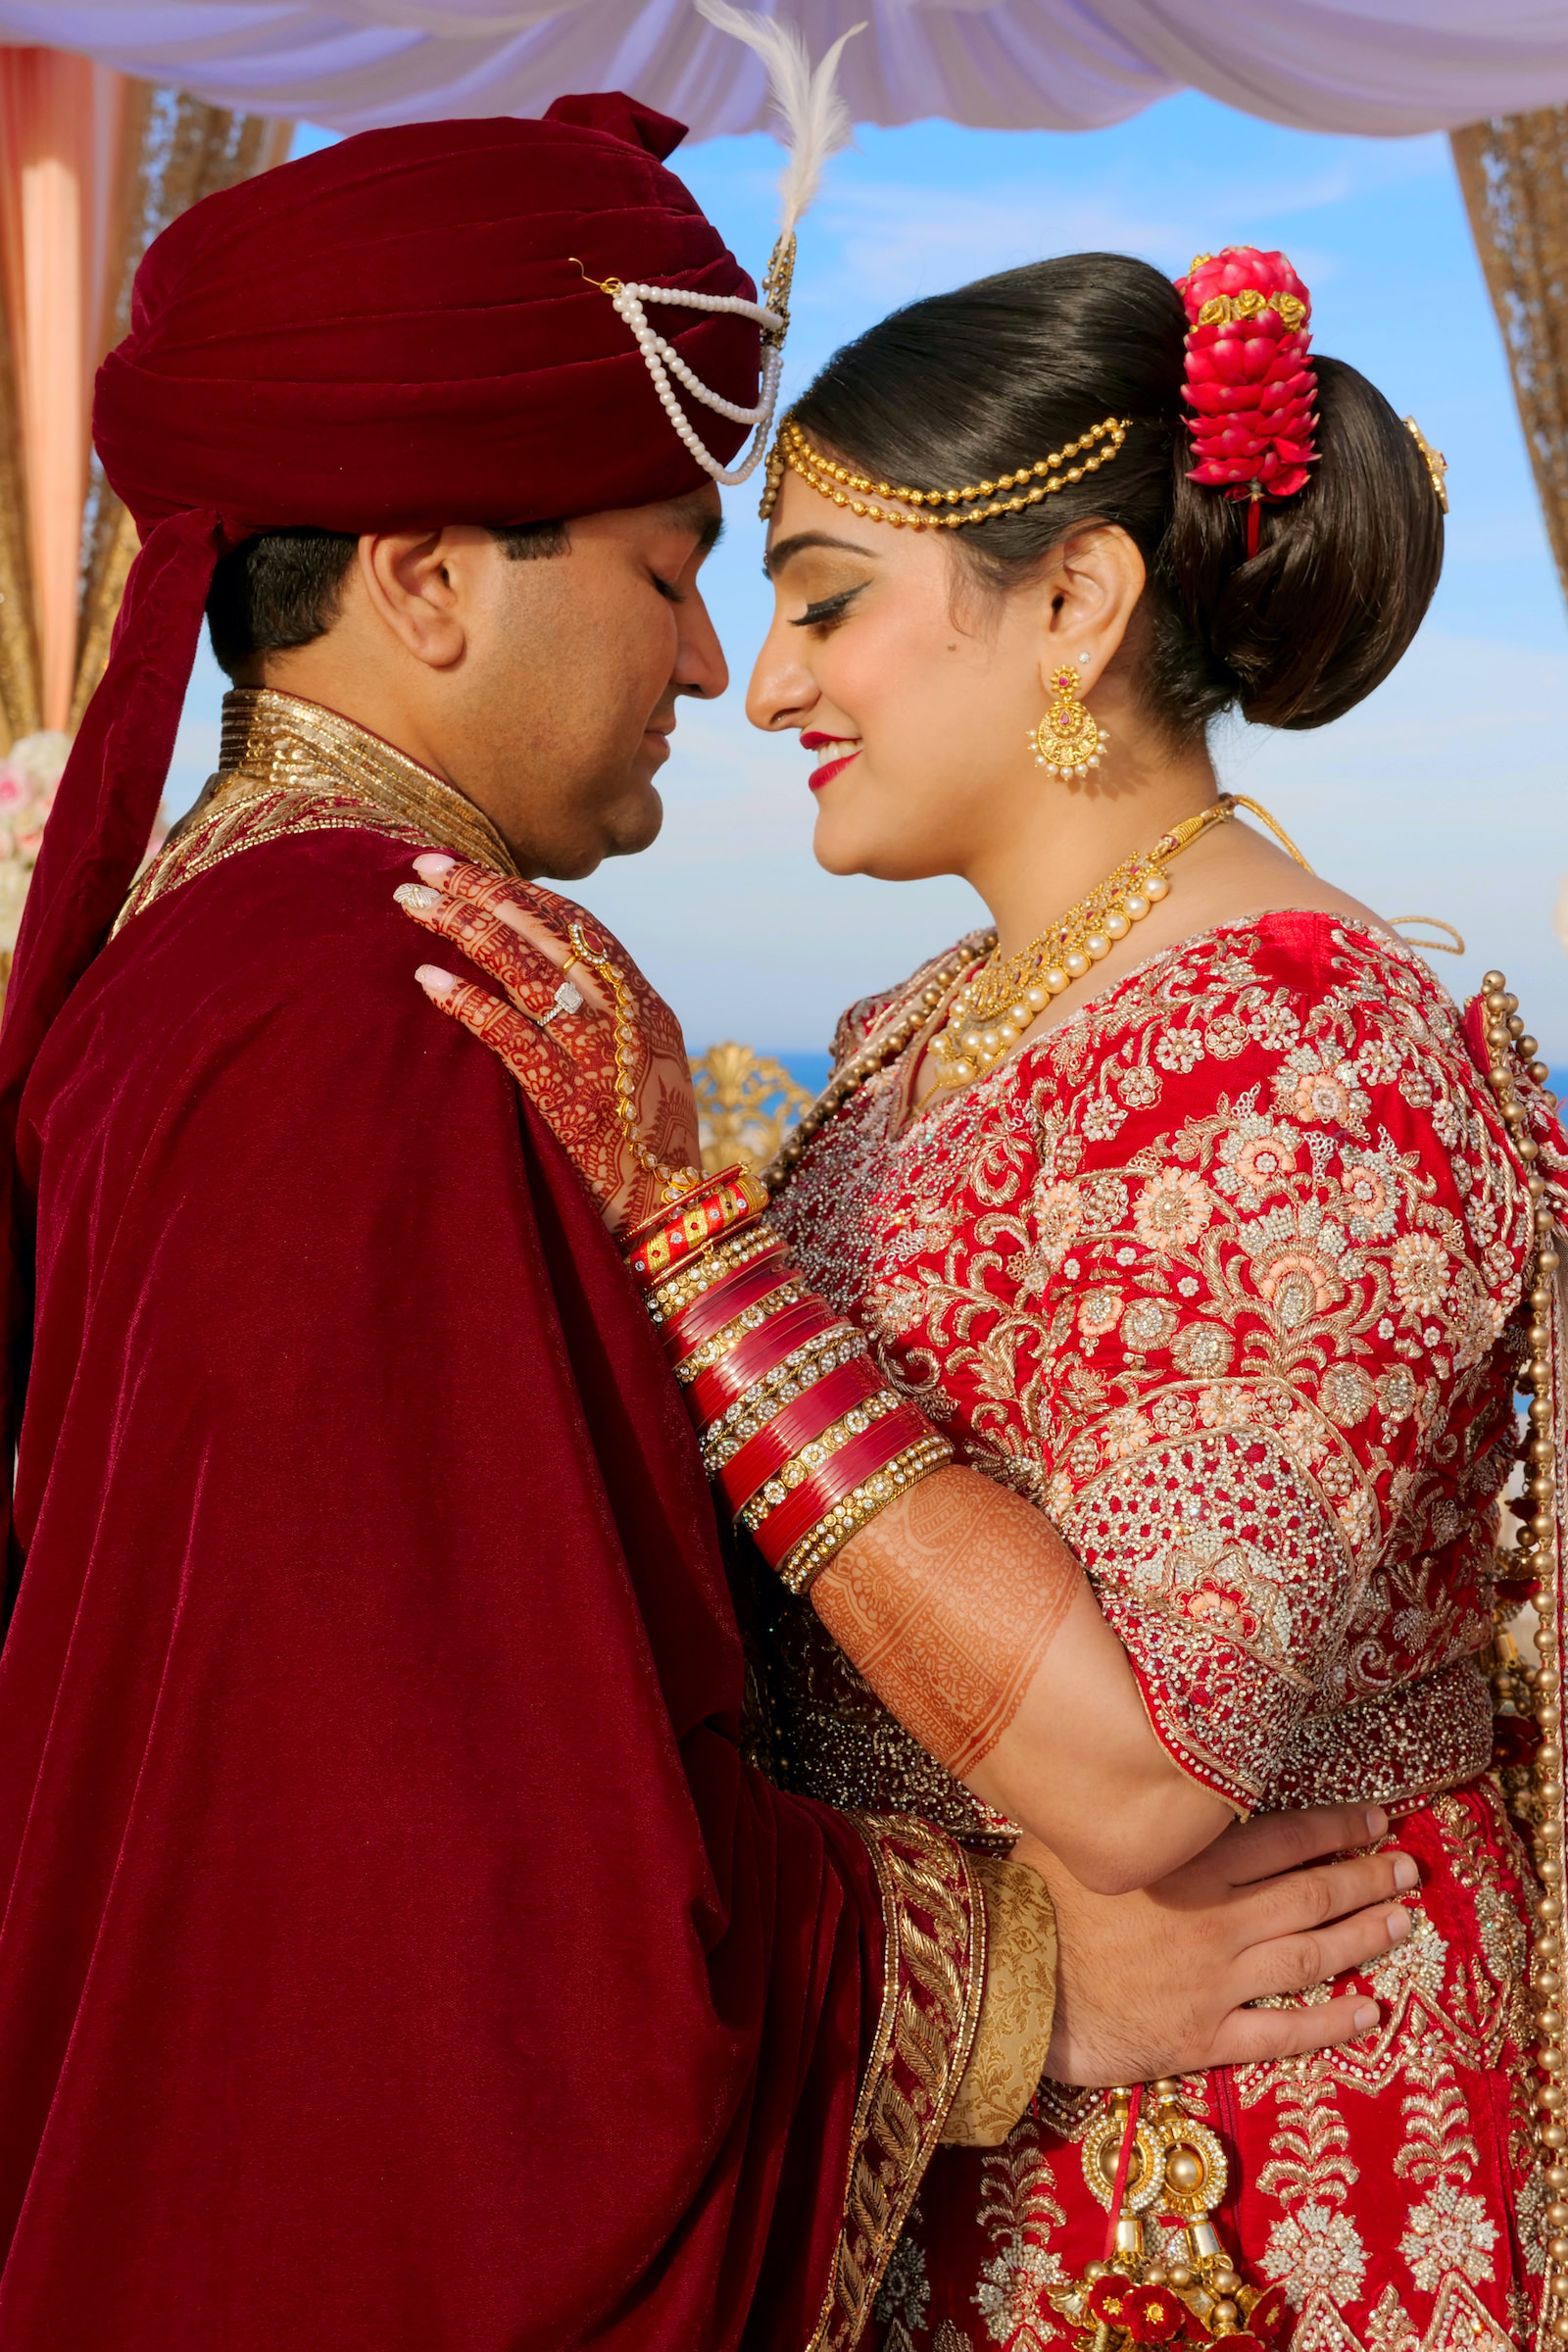 Clearwater Florida Indian Wedding | Bride and Groom Outdoor Portrait | Red and Gold Indian Bridal Gown Lehenga Saree with Mehndi